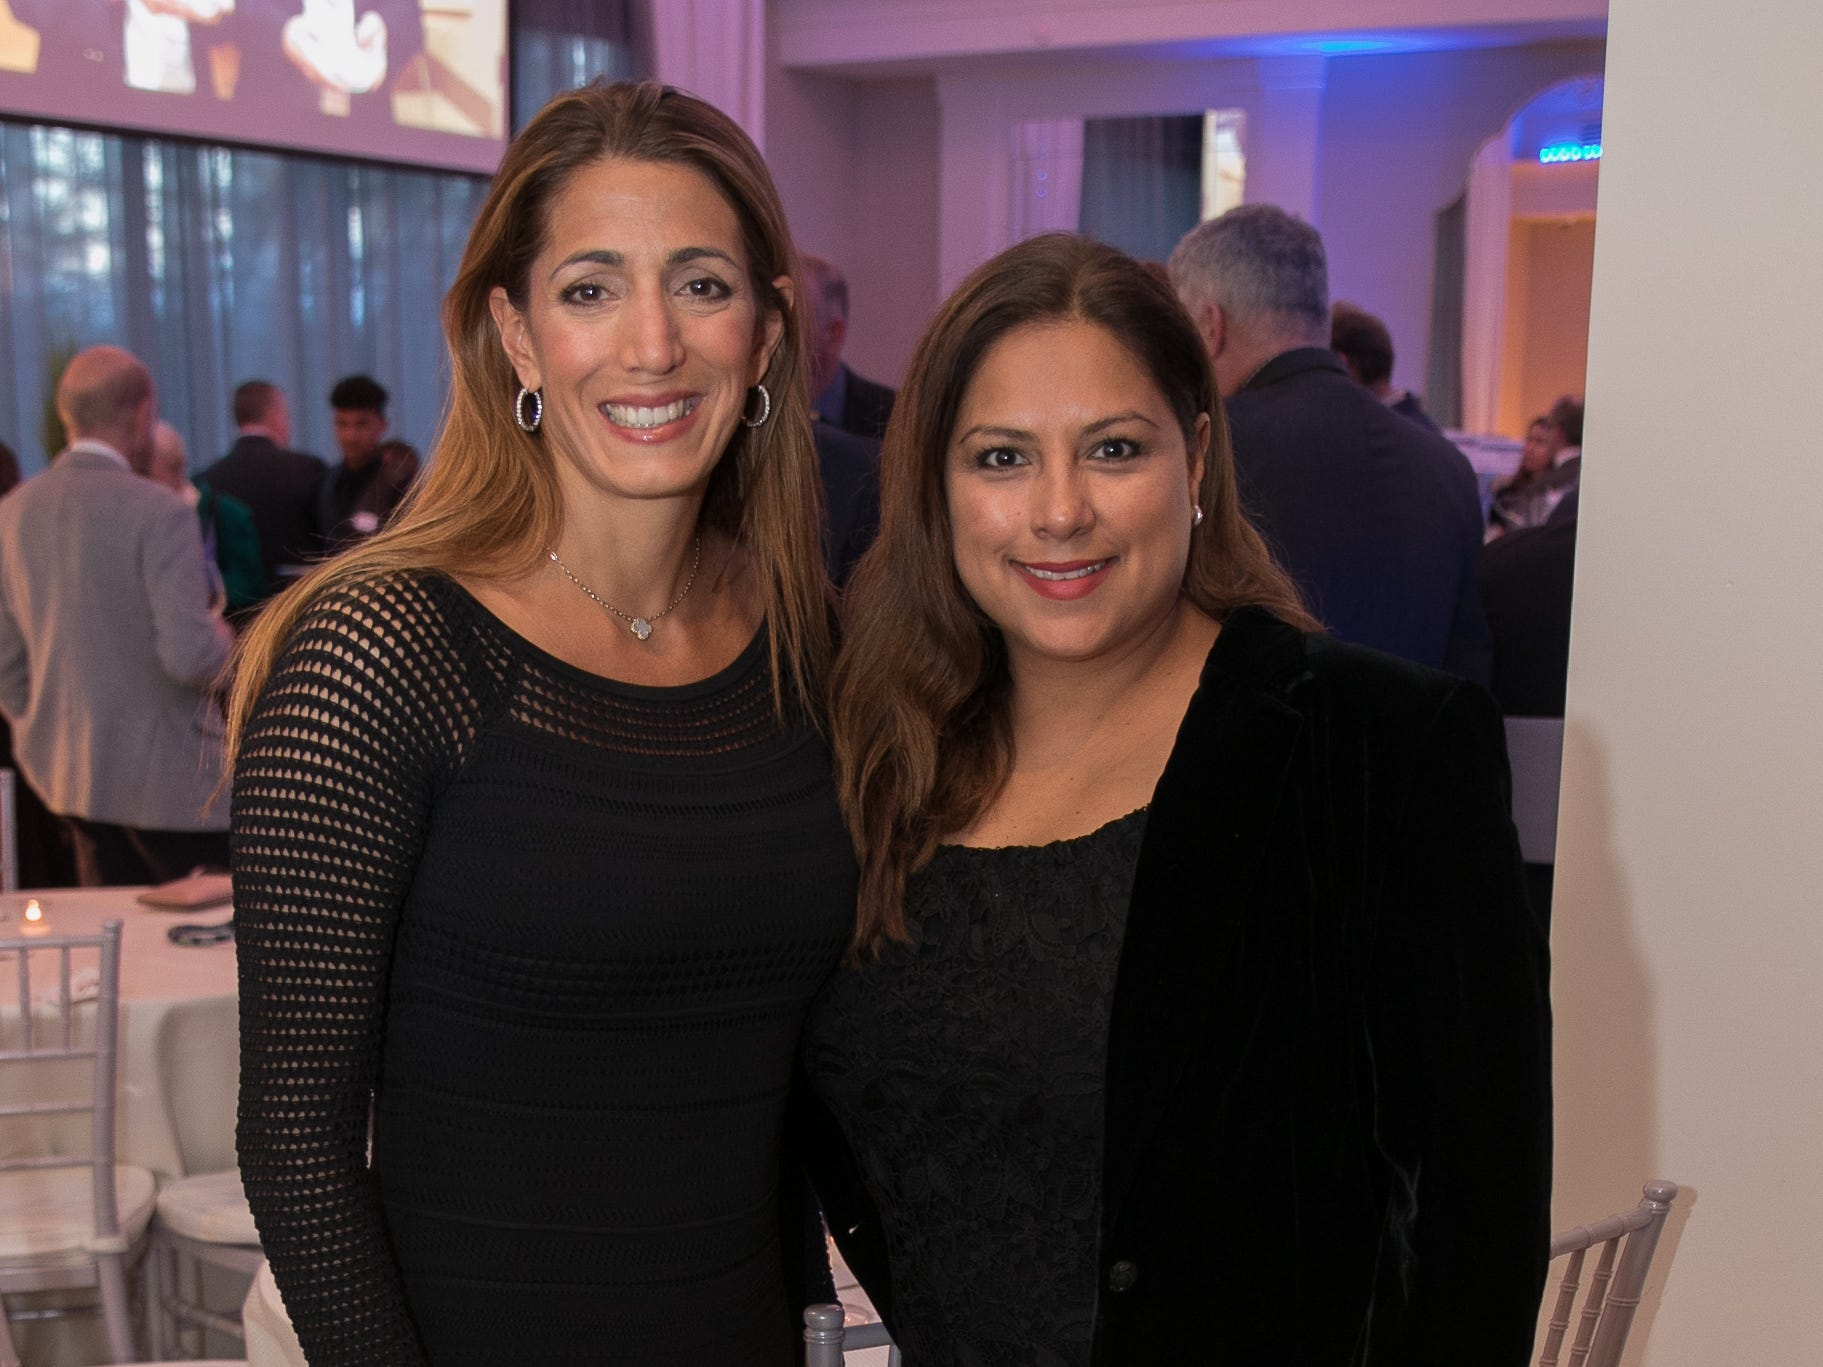 Michelle Limbardo, Adriena Bonilla. Academy of The Holy Angels held their 22nd annual Angelic Evening at Edgewood Country Club in RiverVale. 03/22/2019